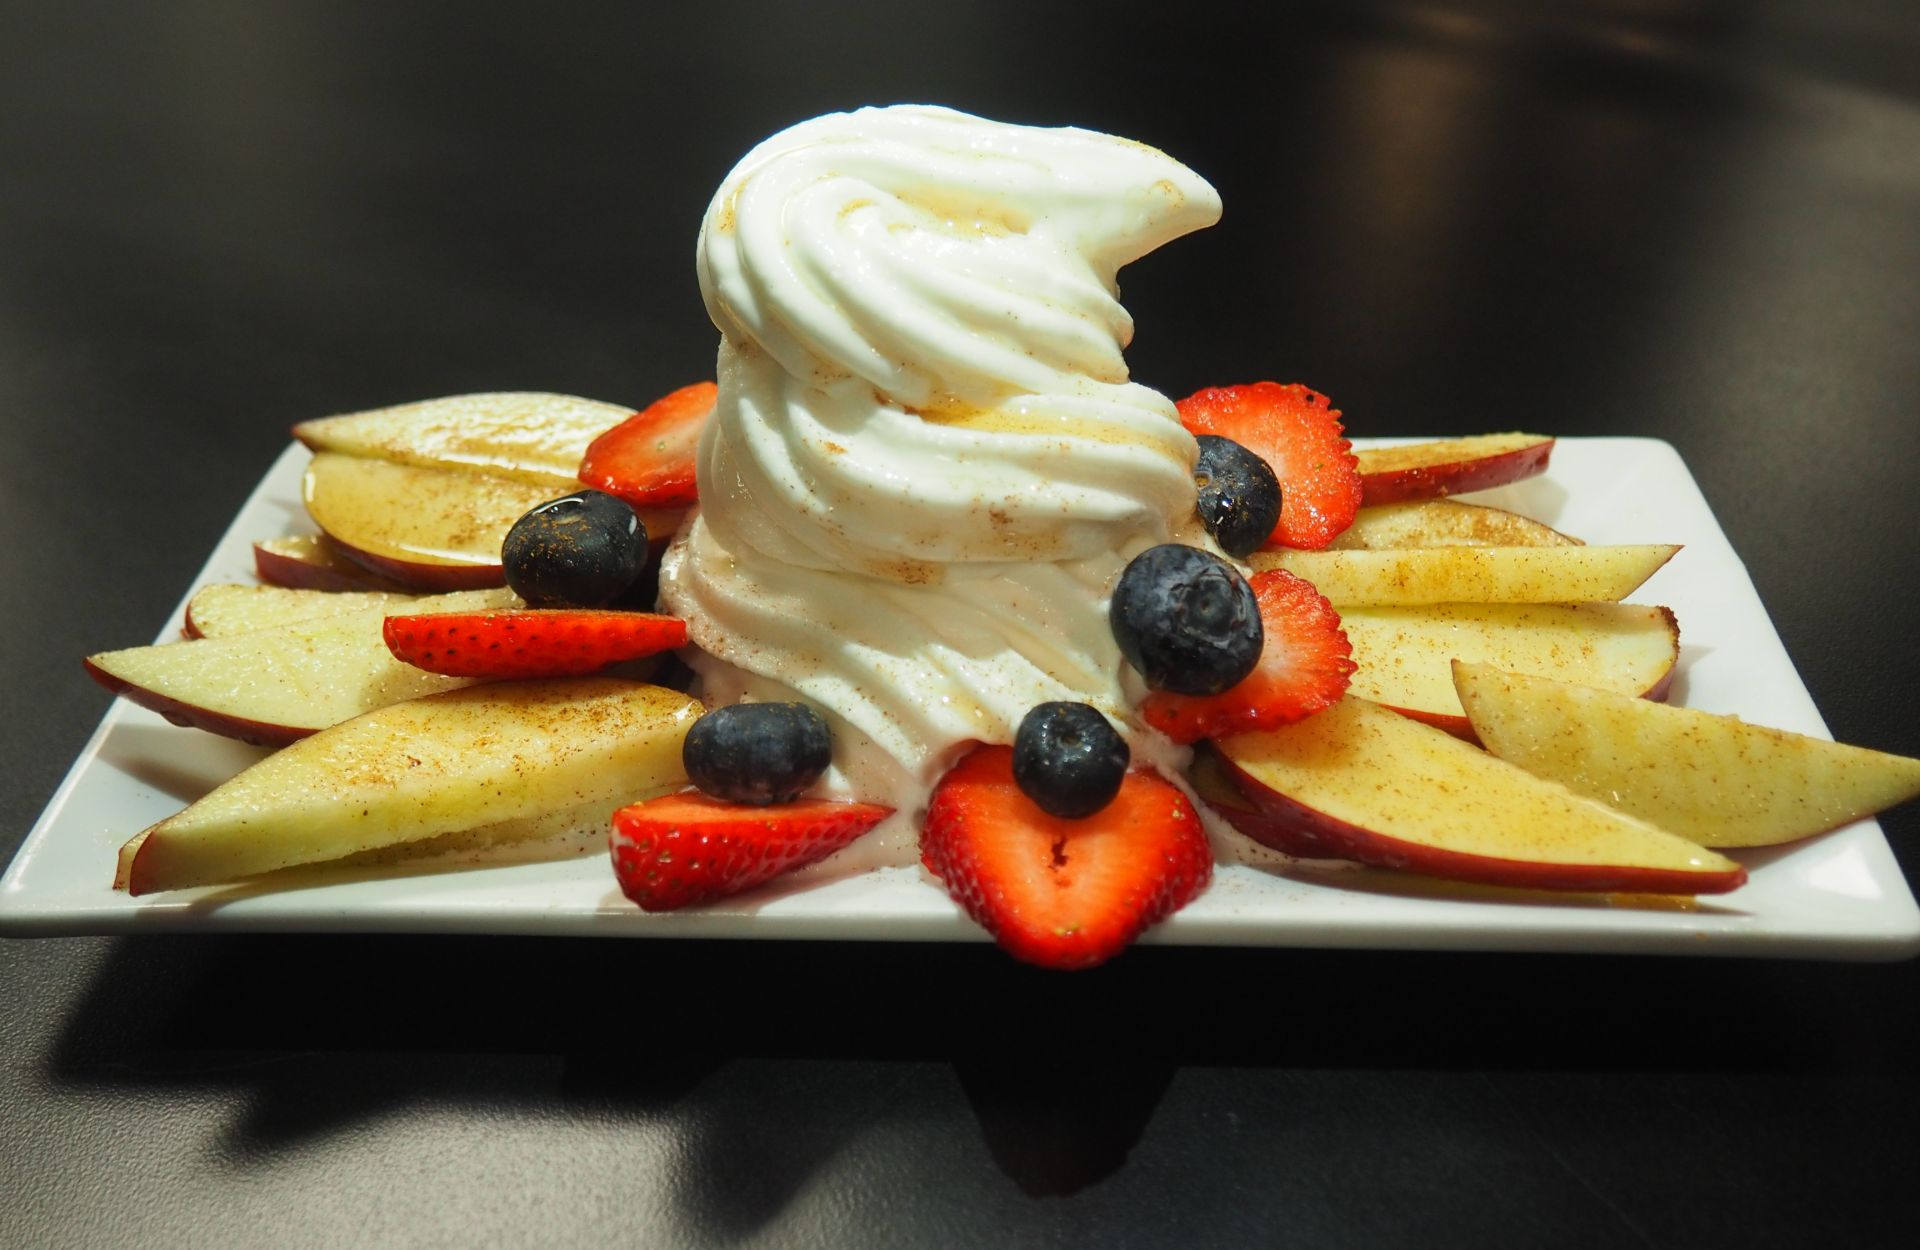 Sliced apples, strawberries and blueberries with frozen yogurt